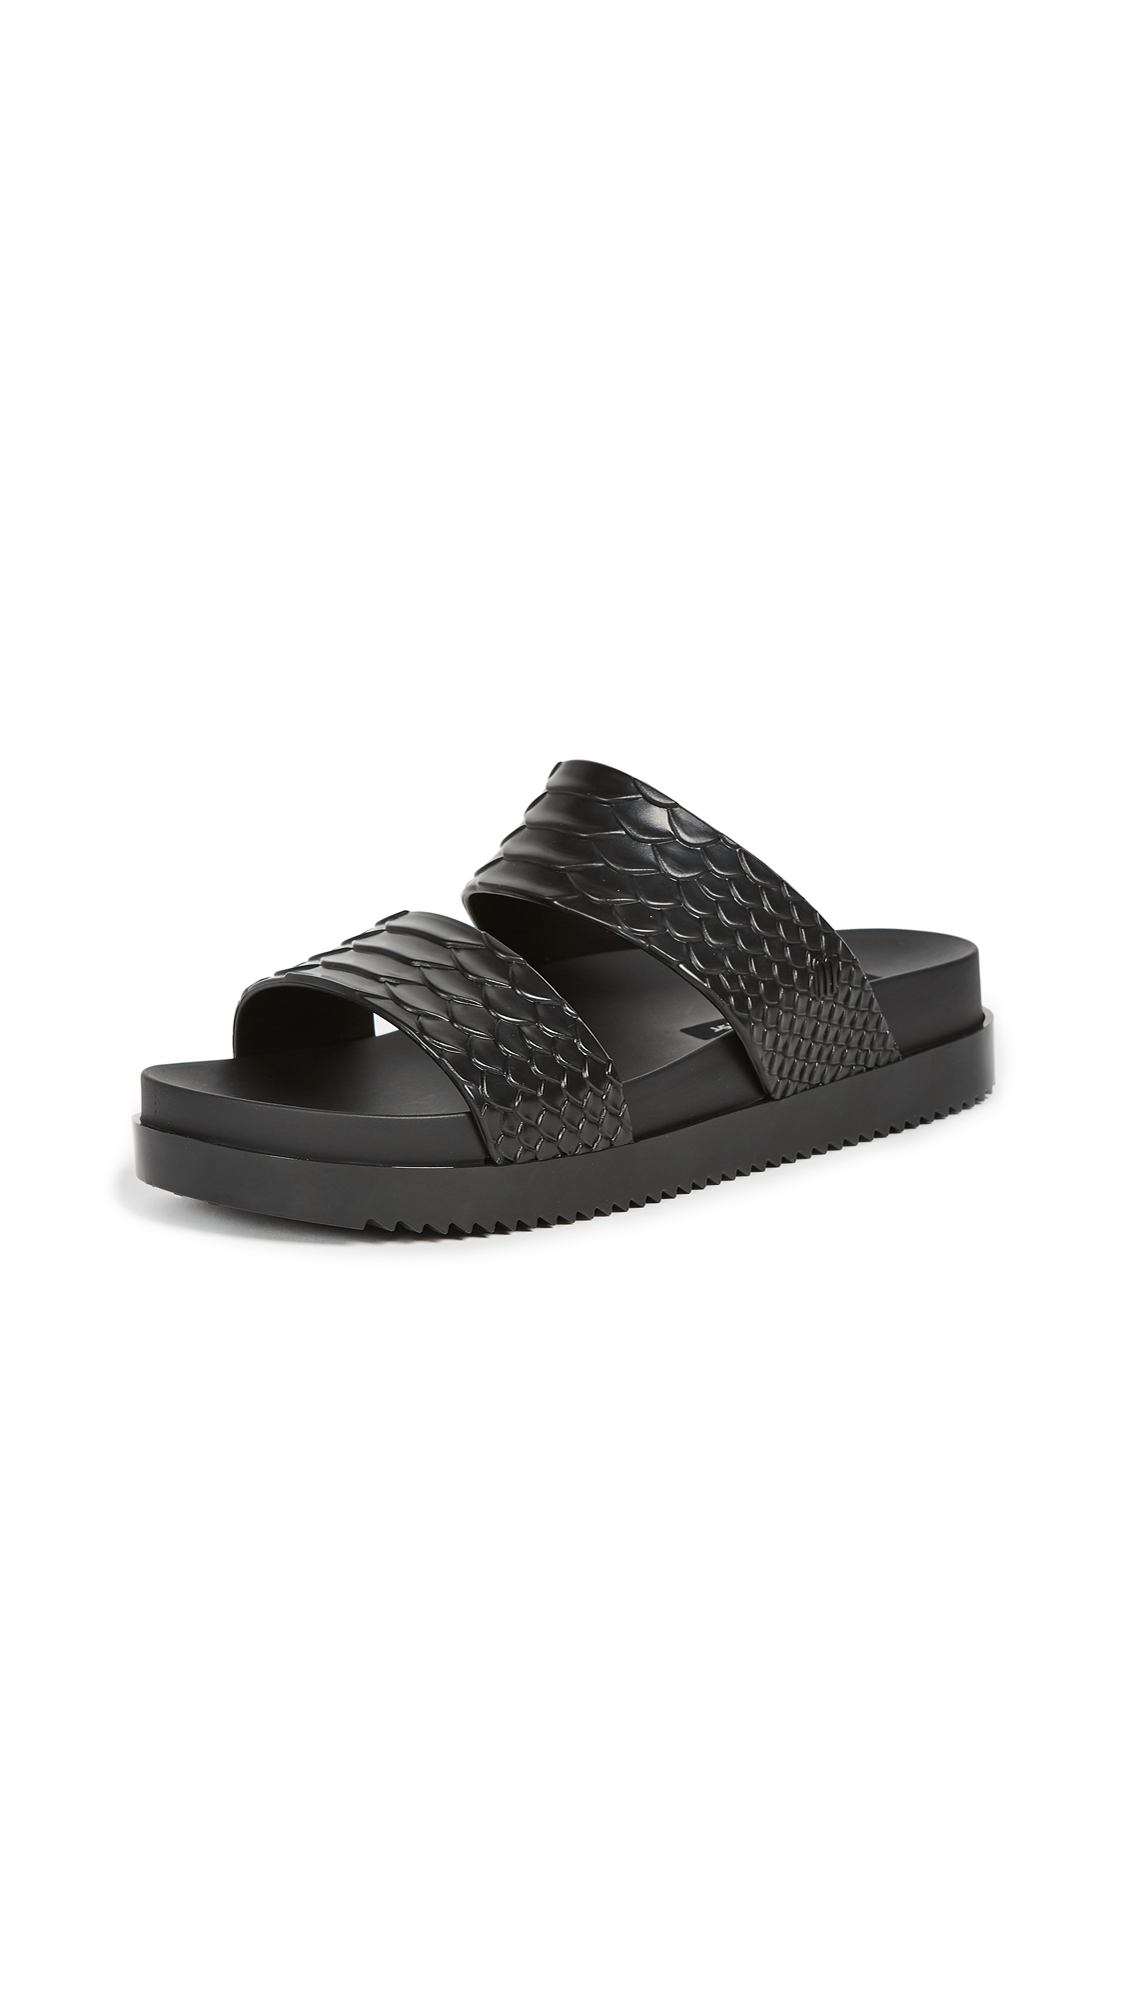 Melissa x Baja East Cosmic Slides - Black